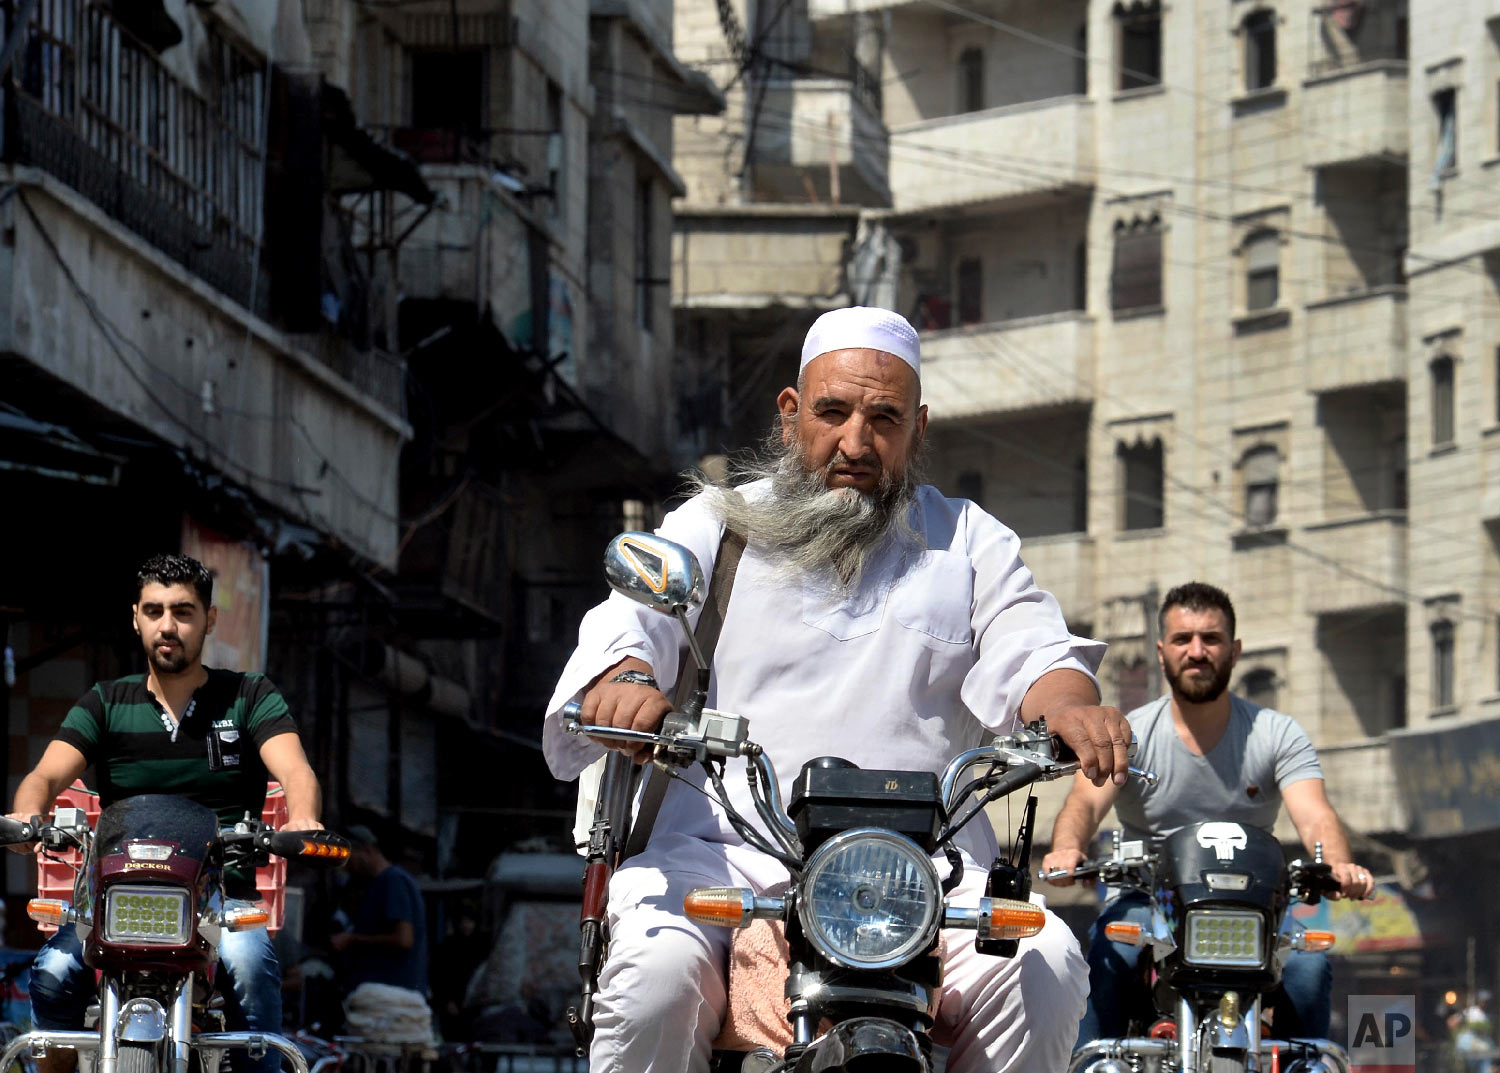 An armed man rides his motorcycle in the center of the northern city of Idlib, Syria on Sept. 10, 2018. (Ugur Can/DHA via AP)